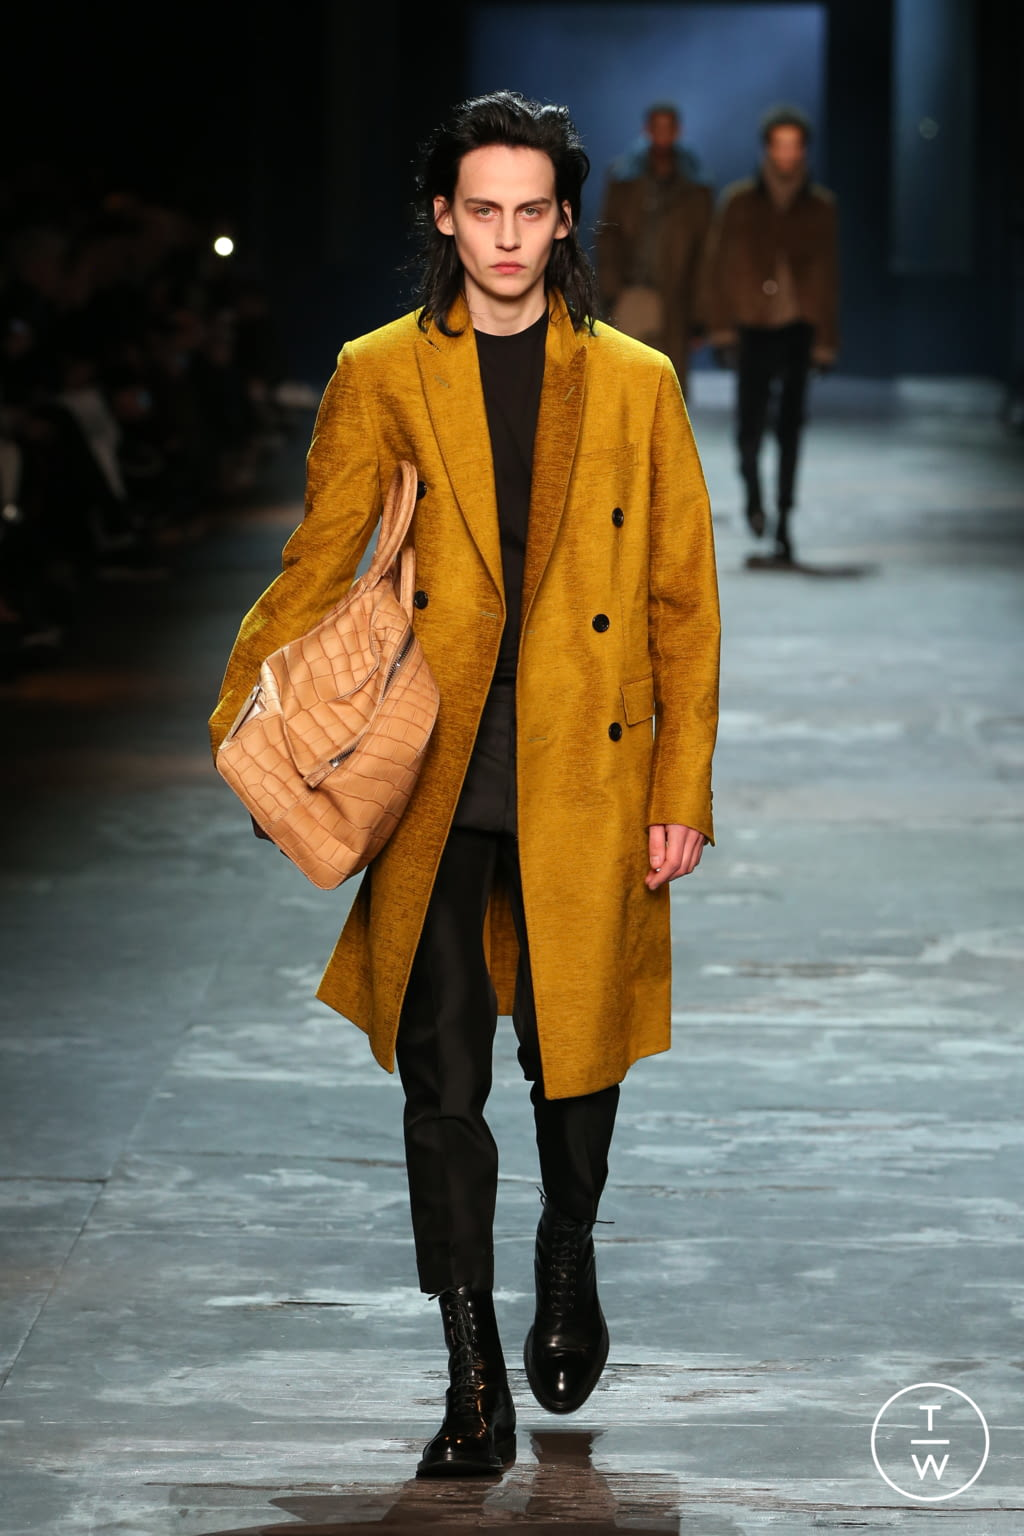 Fashion Week Paris Fall/Winter 2017 look 6 from the Berluti collection 男装